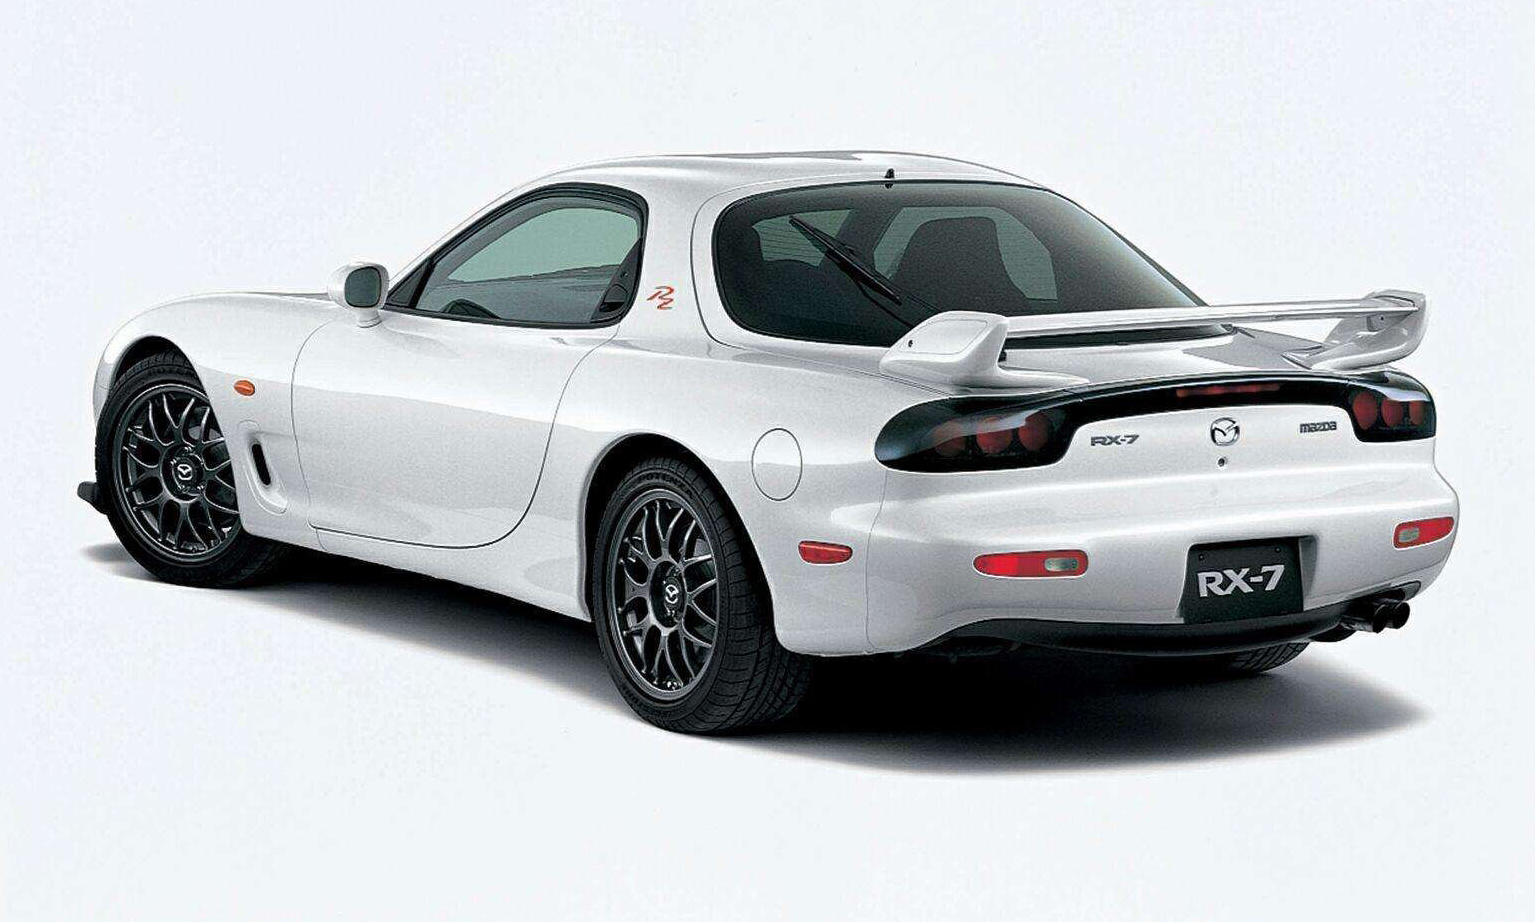 Mazda Rx 7 Pictures Information And Specs 2005 8 Engine Diagram Cars 14